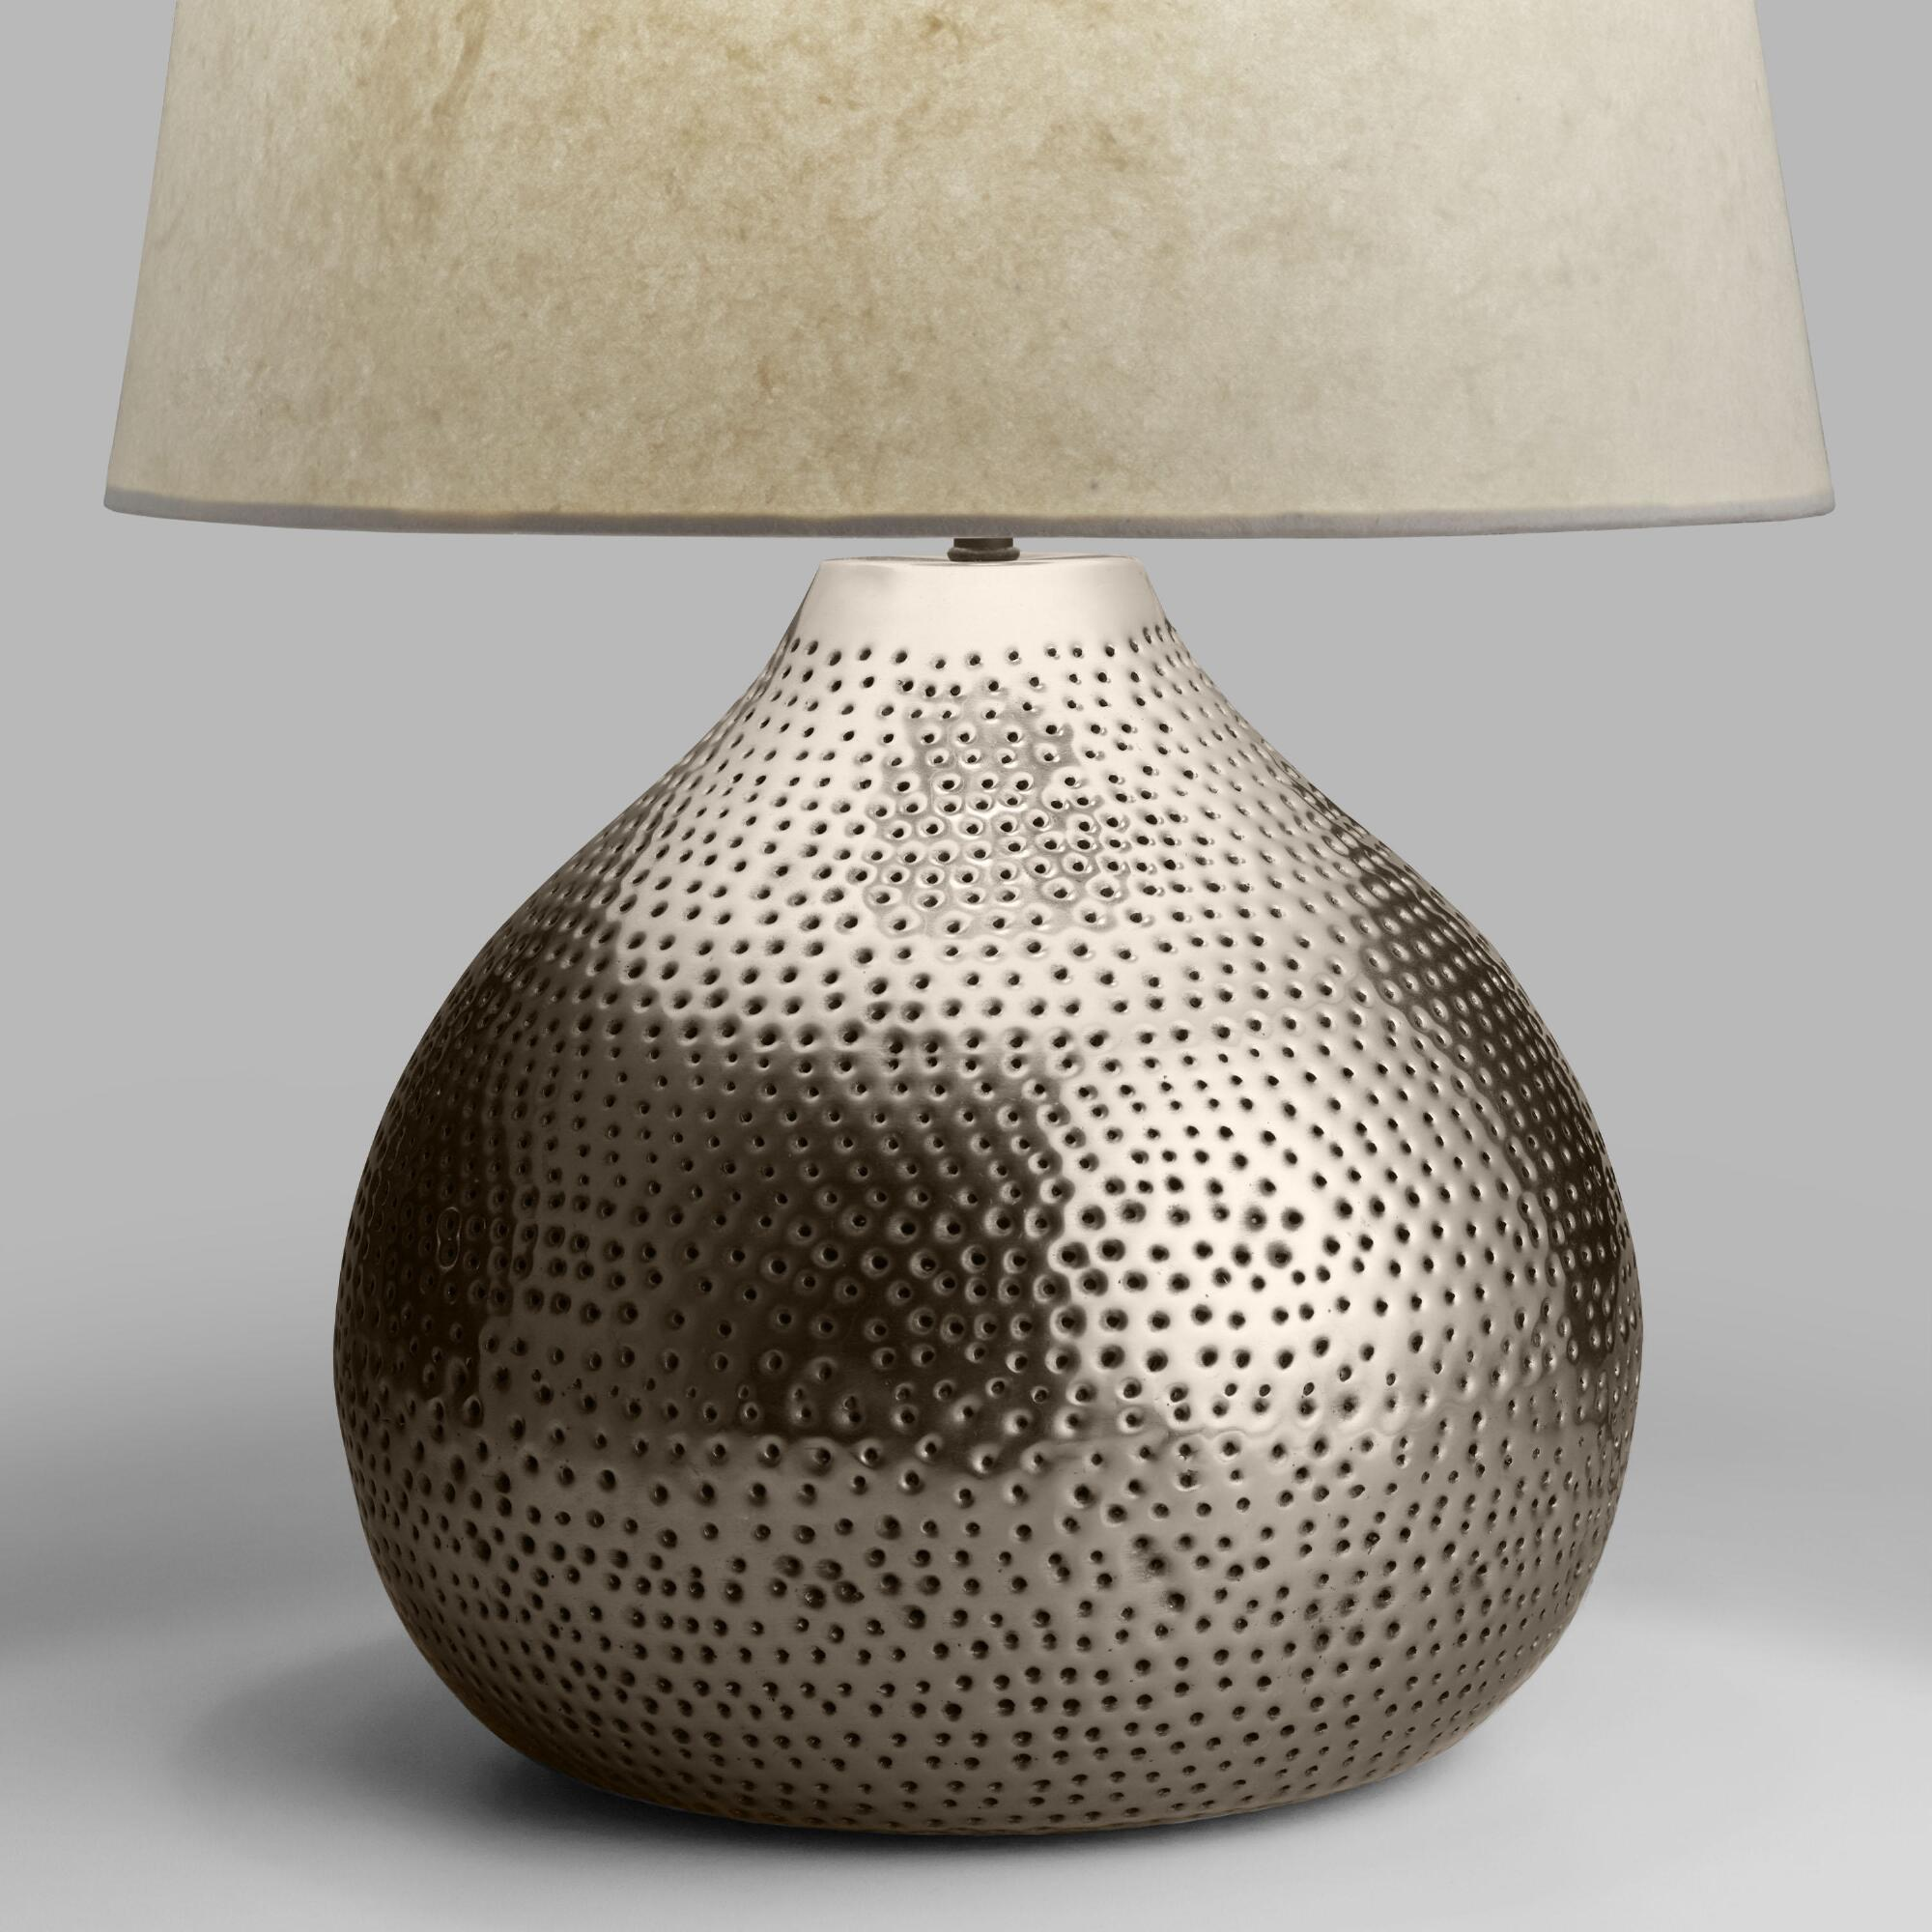 table top lamps unique lamp shades world market iipsrv fcgi plus accent tables pewter prema punched metal base pendant sheesham wood coffee brown living room furniture modern